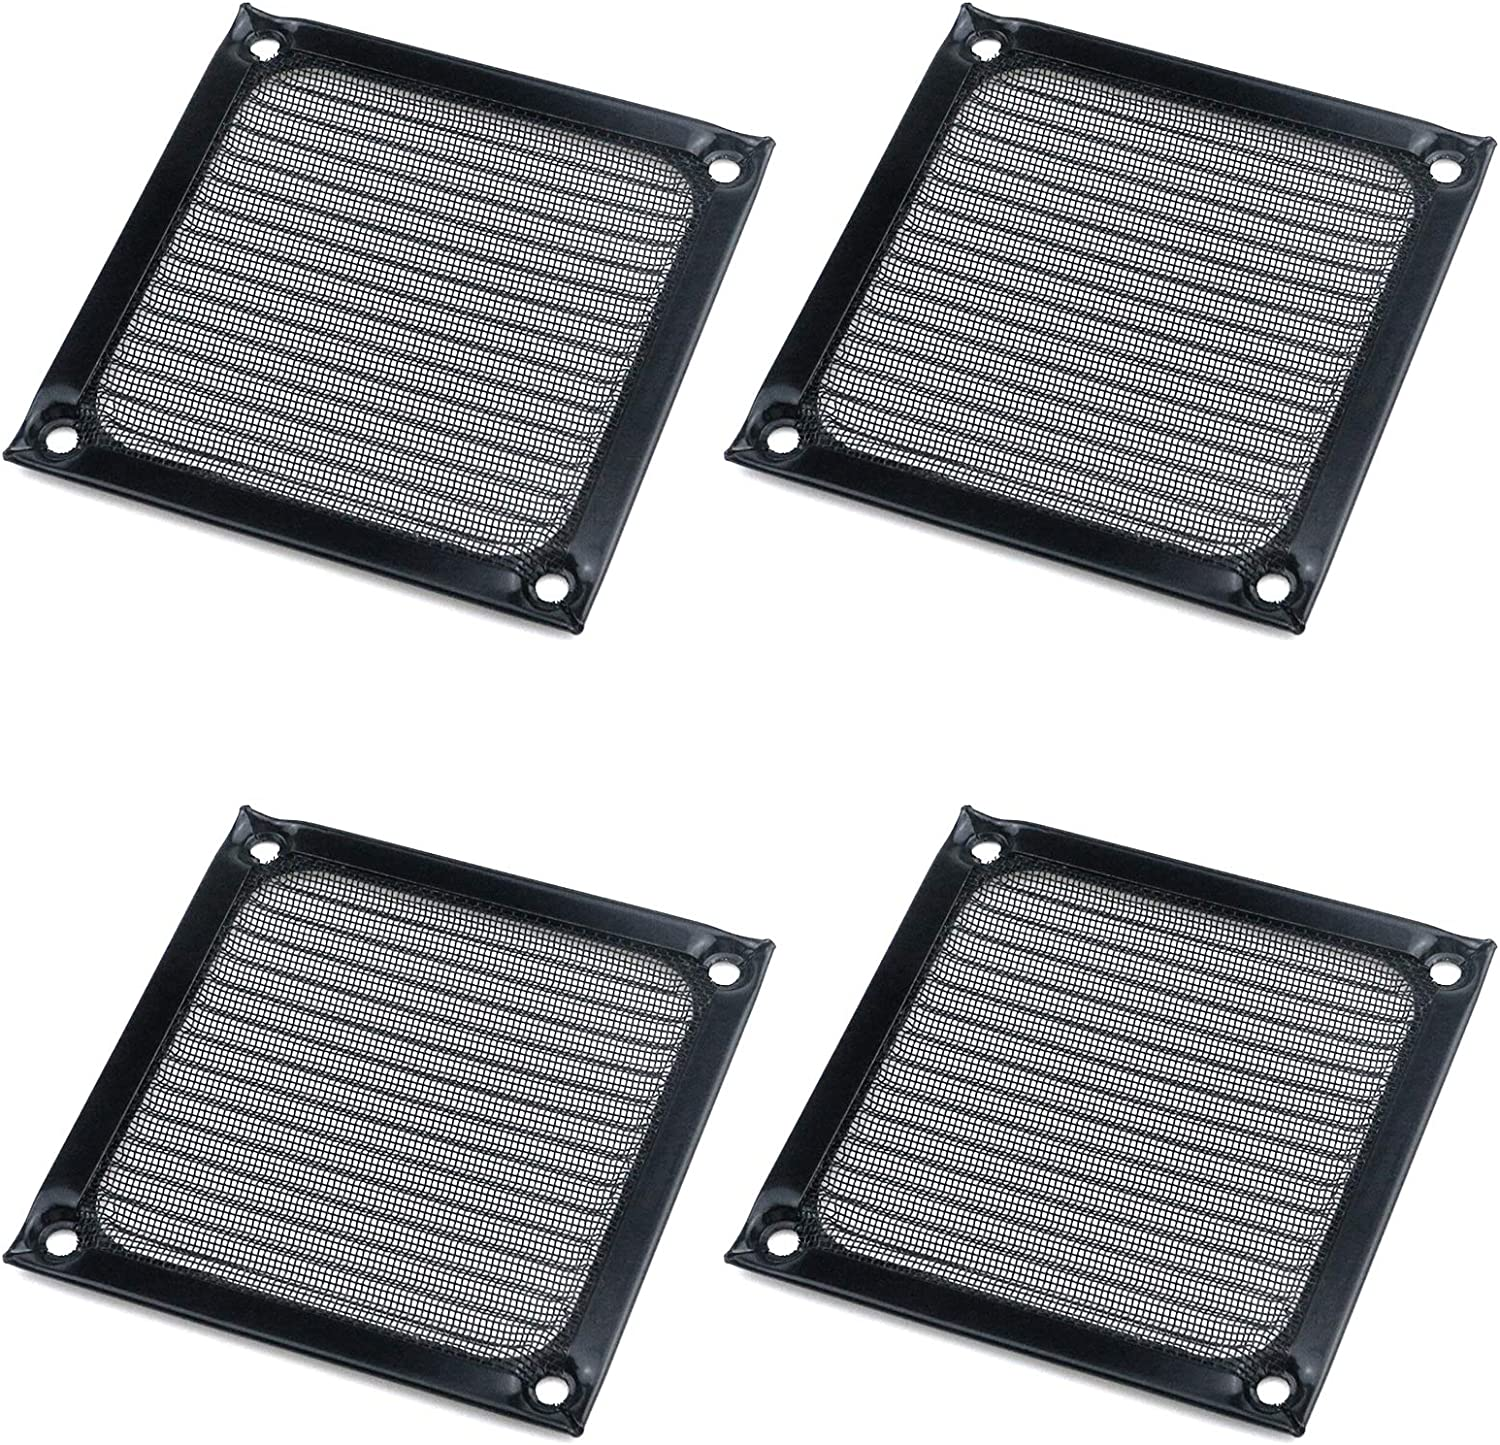 Semetall Computer Fan Limited time cheap New Orleans Mall sale Dust Filter Mesh PC Pack 80mm 4 F